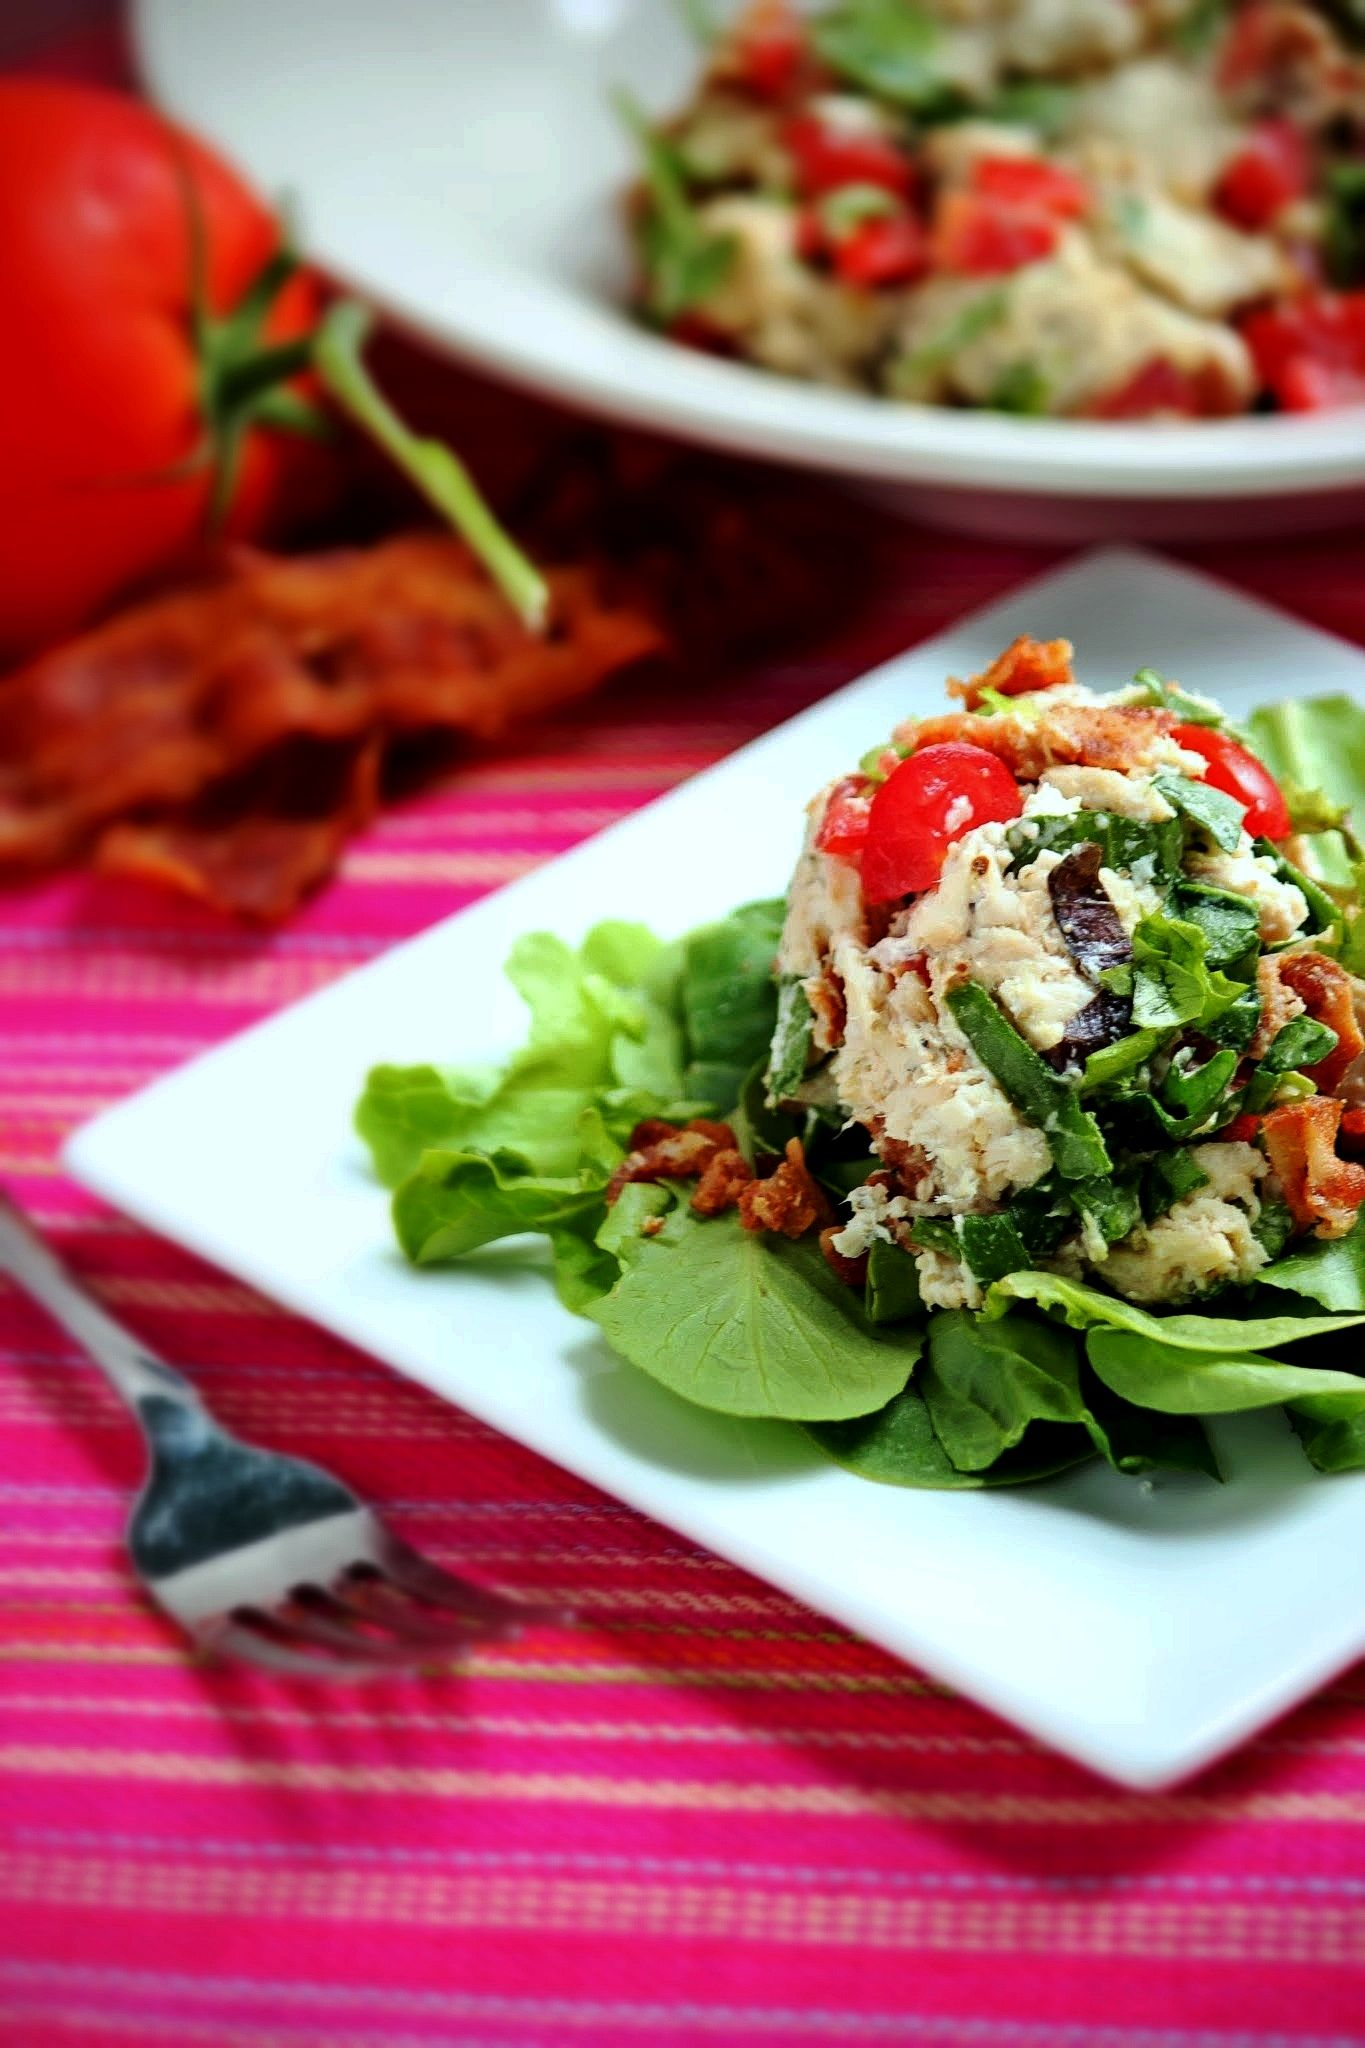 Blt chicken salad added green onions but didnt add the